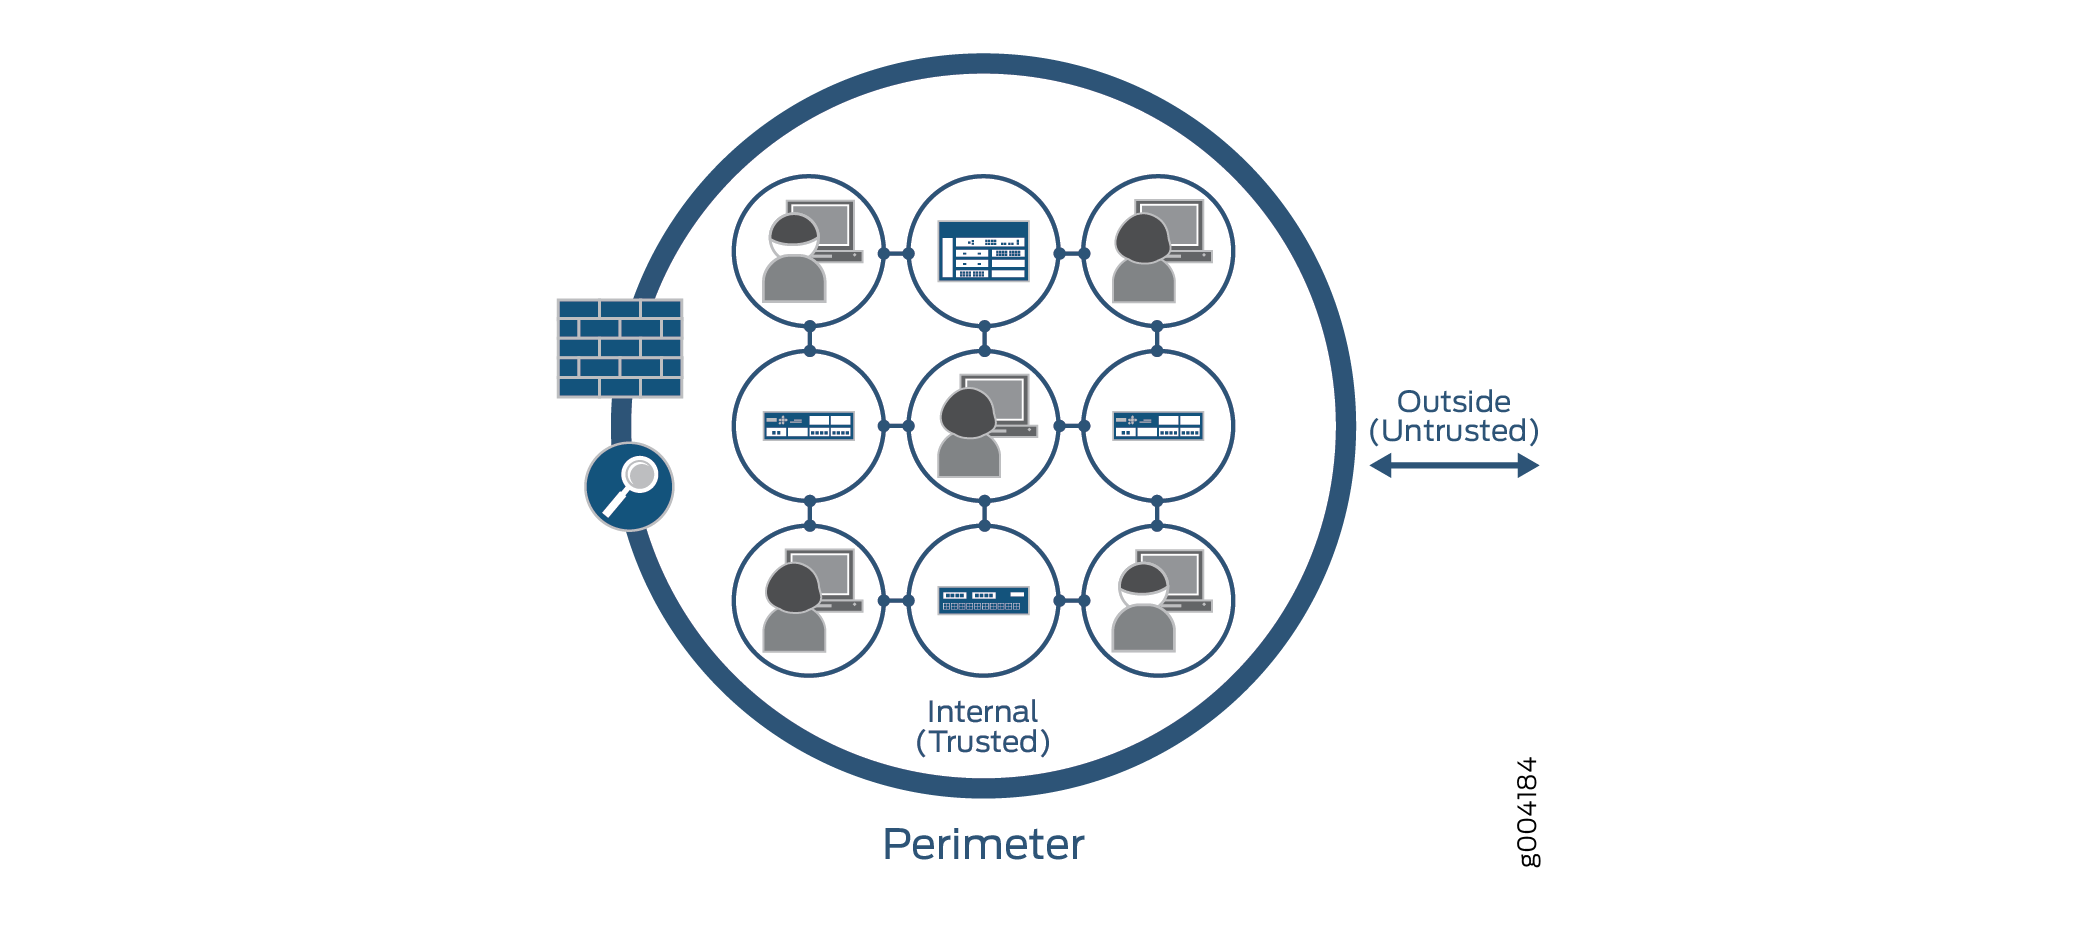 Perimeter-Defined Security Model